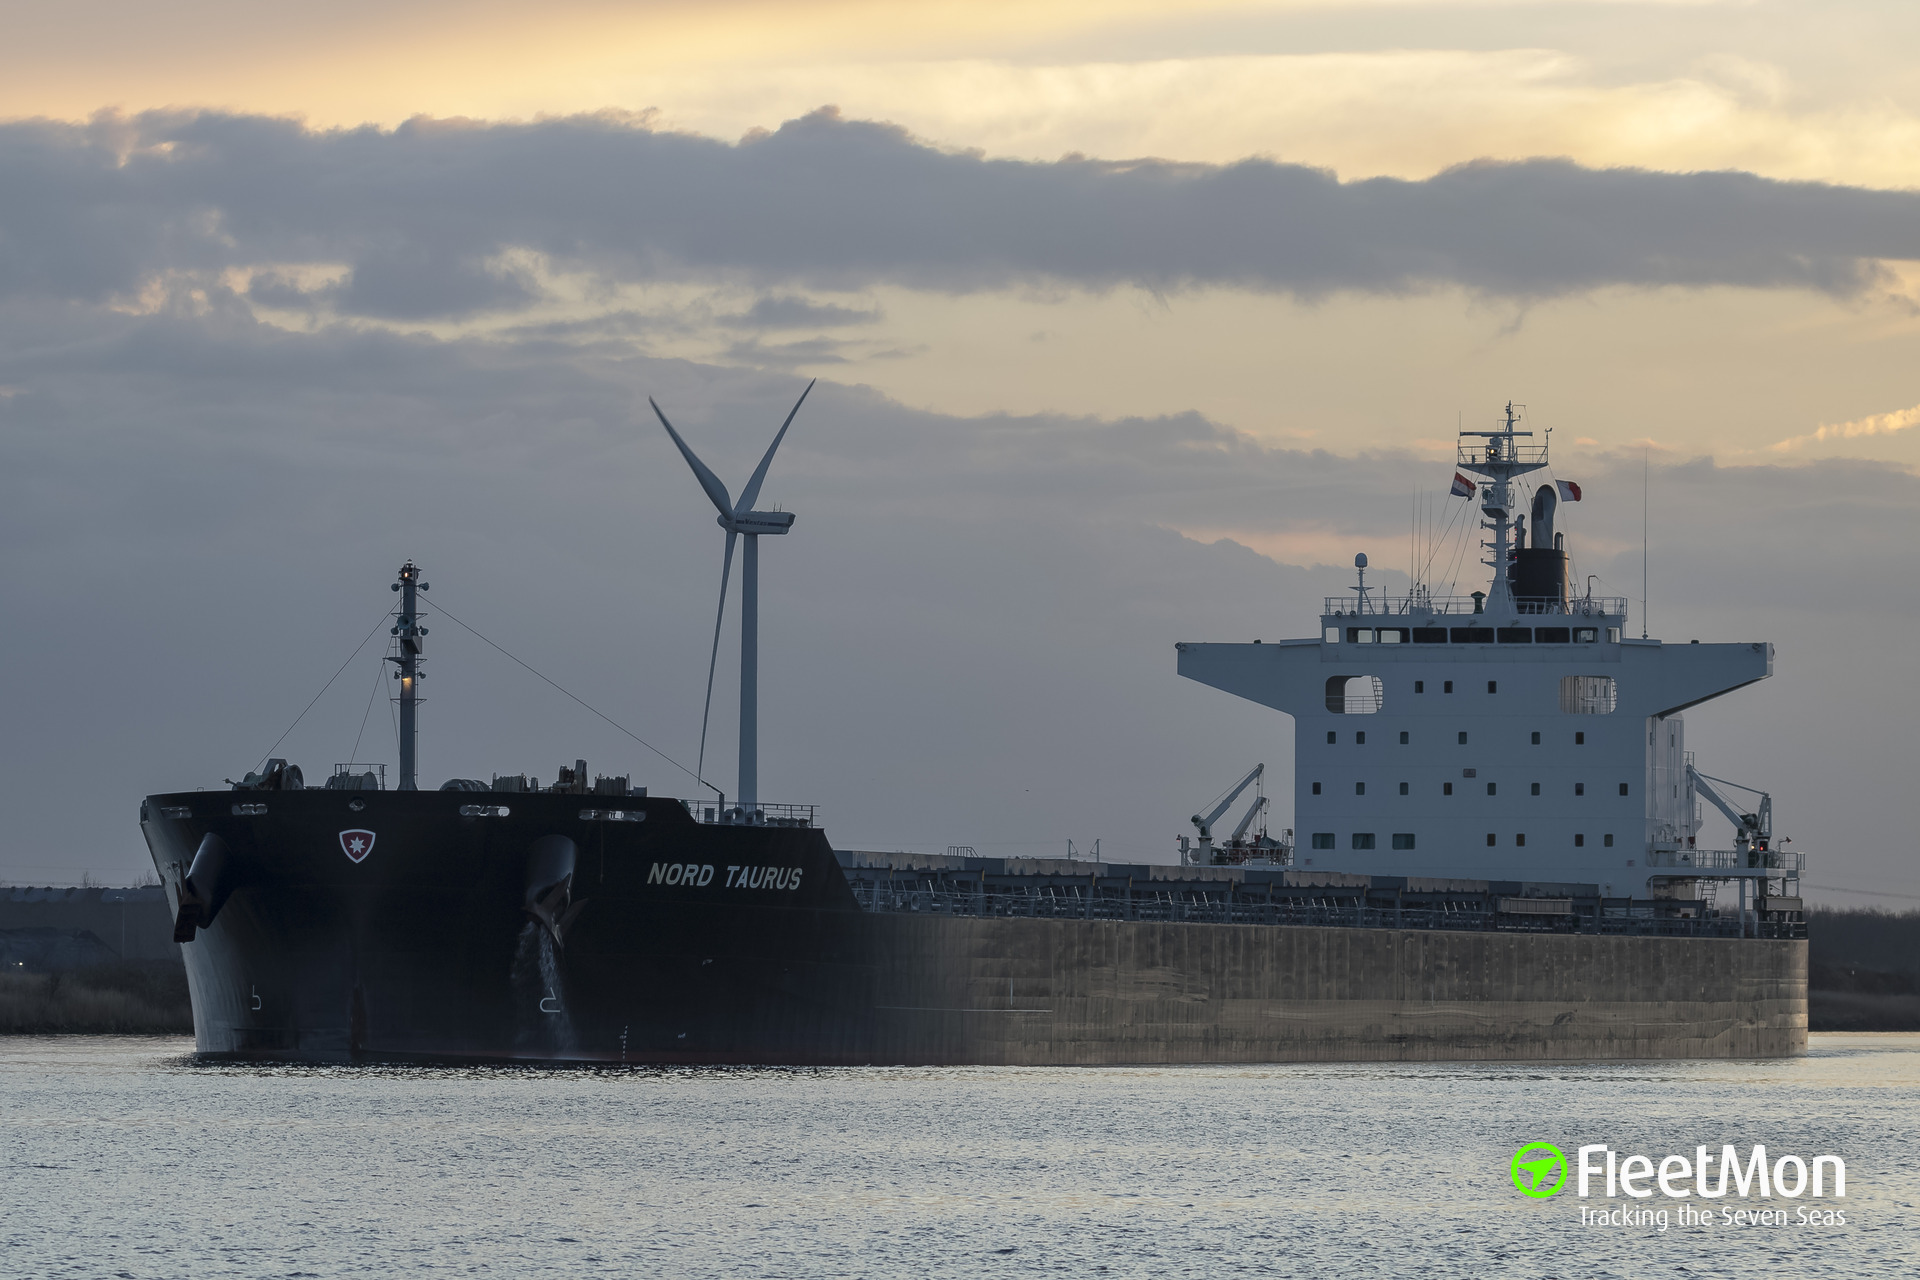 Japanese bulk carrier collided with Dutch pilot boat